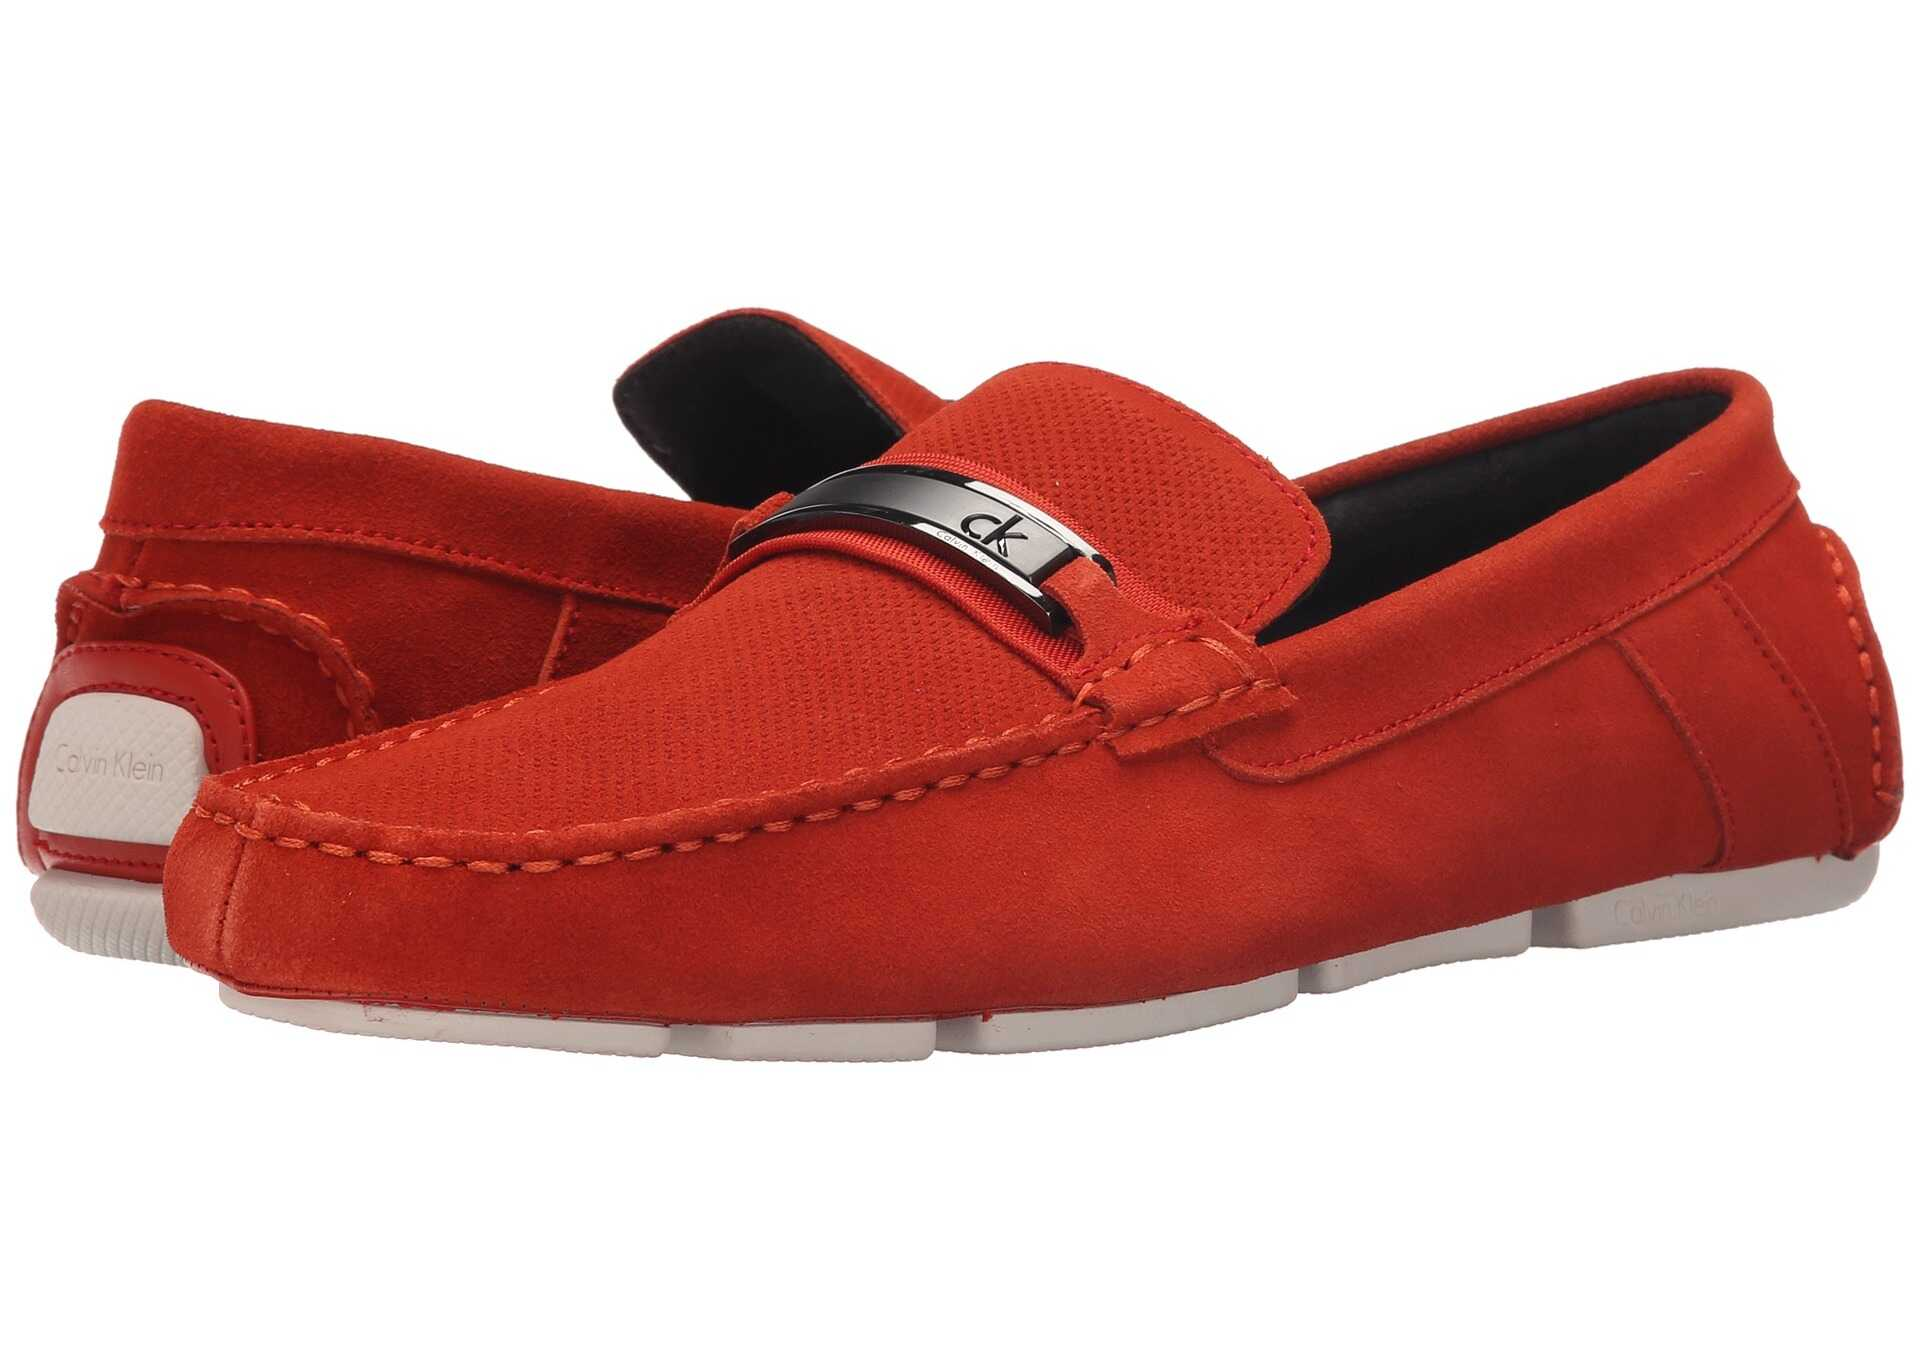 Calvin Klein Marcell* Red/orange Perf Suede